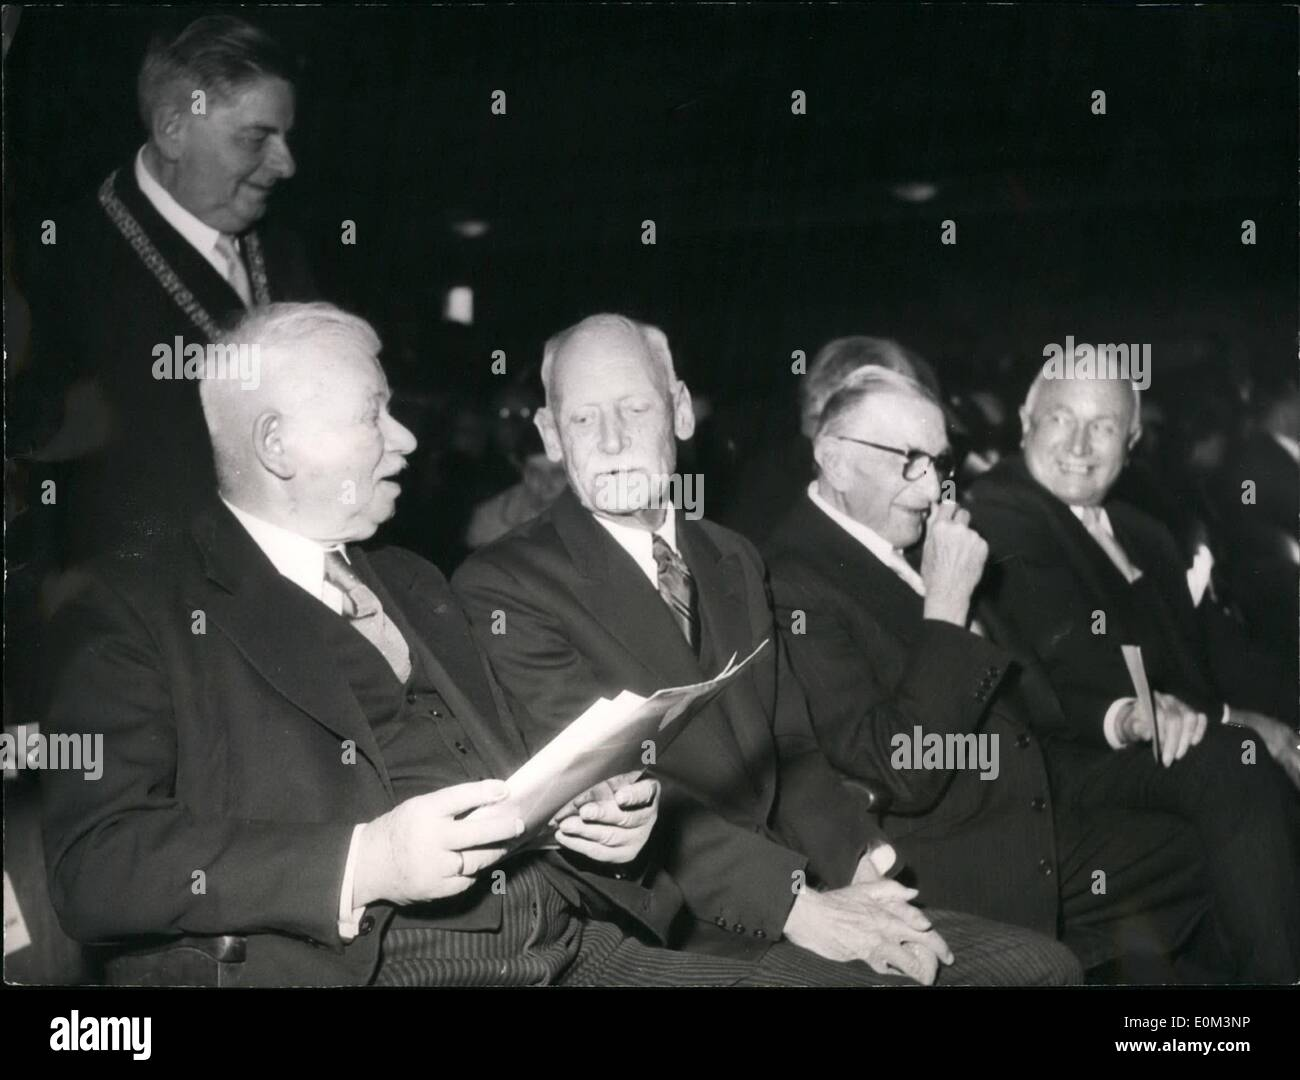 May 05, 1953 - 50th Anniversary Of The ''Deutschers Museum'' (German Museum): At The Occasion Of The 50th Anniversary Of The German Museum In Munich. A Festival Was Held In The Great Festival Hall Of The German Museum. Many Prominent Members Attended The Festival. Photo shows (From left to right):- Zeneck, A Well-Known Bavarian Privy Councillor; Crown Prince Rupprecht Of Bavaria; Herr Reusch, Director; And Herr Schubert, Minister. Behind Herrr Zeneck (Standing) Is Professor San Niccolo, The Rector Of The Munich University. - Stock Image